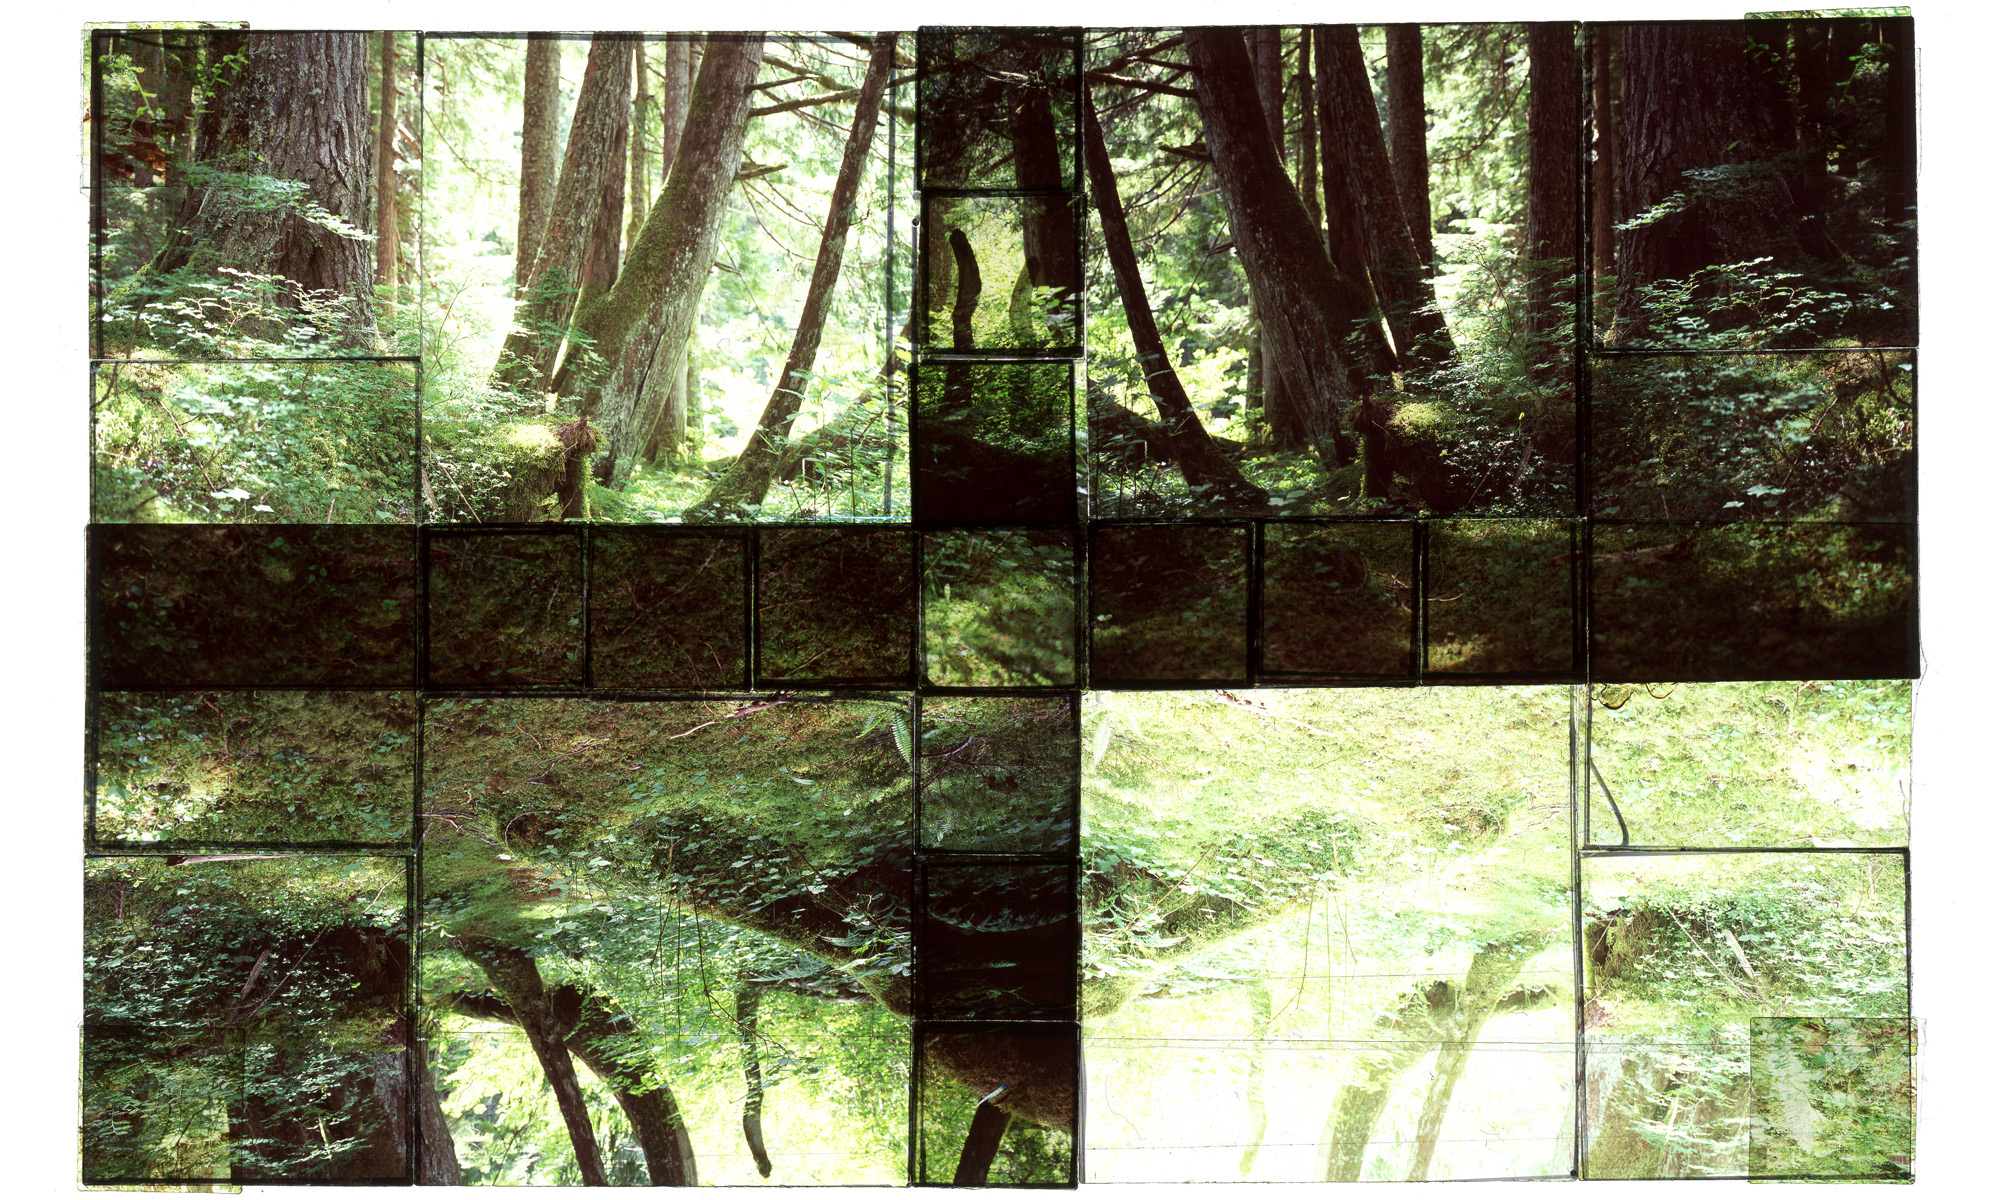 """GREEN LAKE, MT. RAINIER NP, 1 • 30""""x 20"""" • GICLEE PRINT FROM TRANSPARENCY FILM COMPOSITION"""